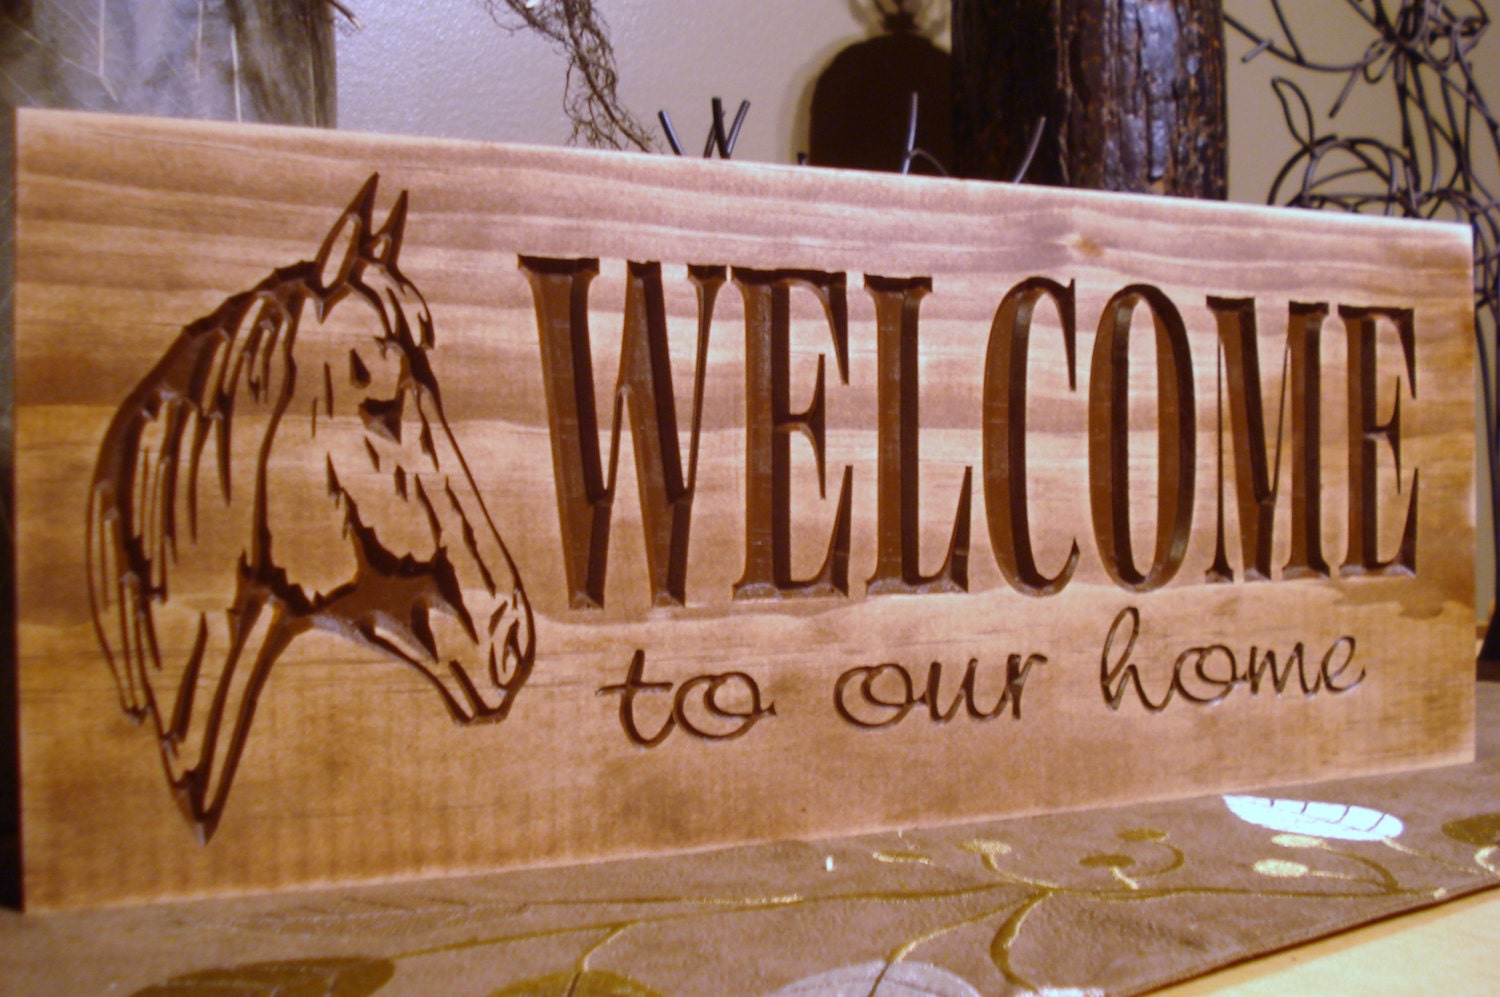 Wood Sign Design Ideas vintage looking painted sign from salvaged wooddiy ideas cheap Rustic Western Inspired Carved Wooden Welcome To Our Home Sign Rustic Horse Farm Ranch Design Best